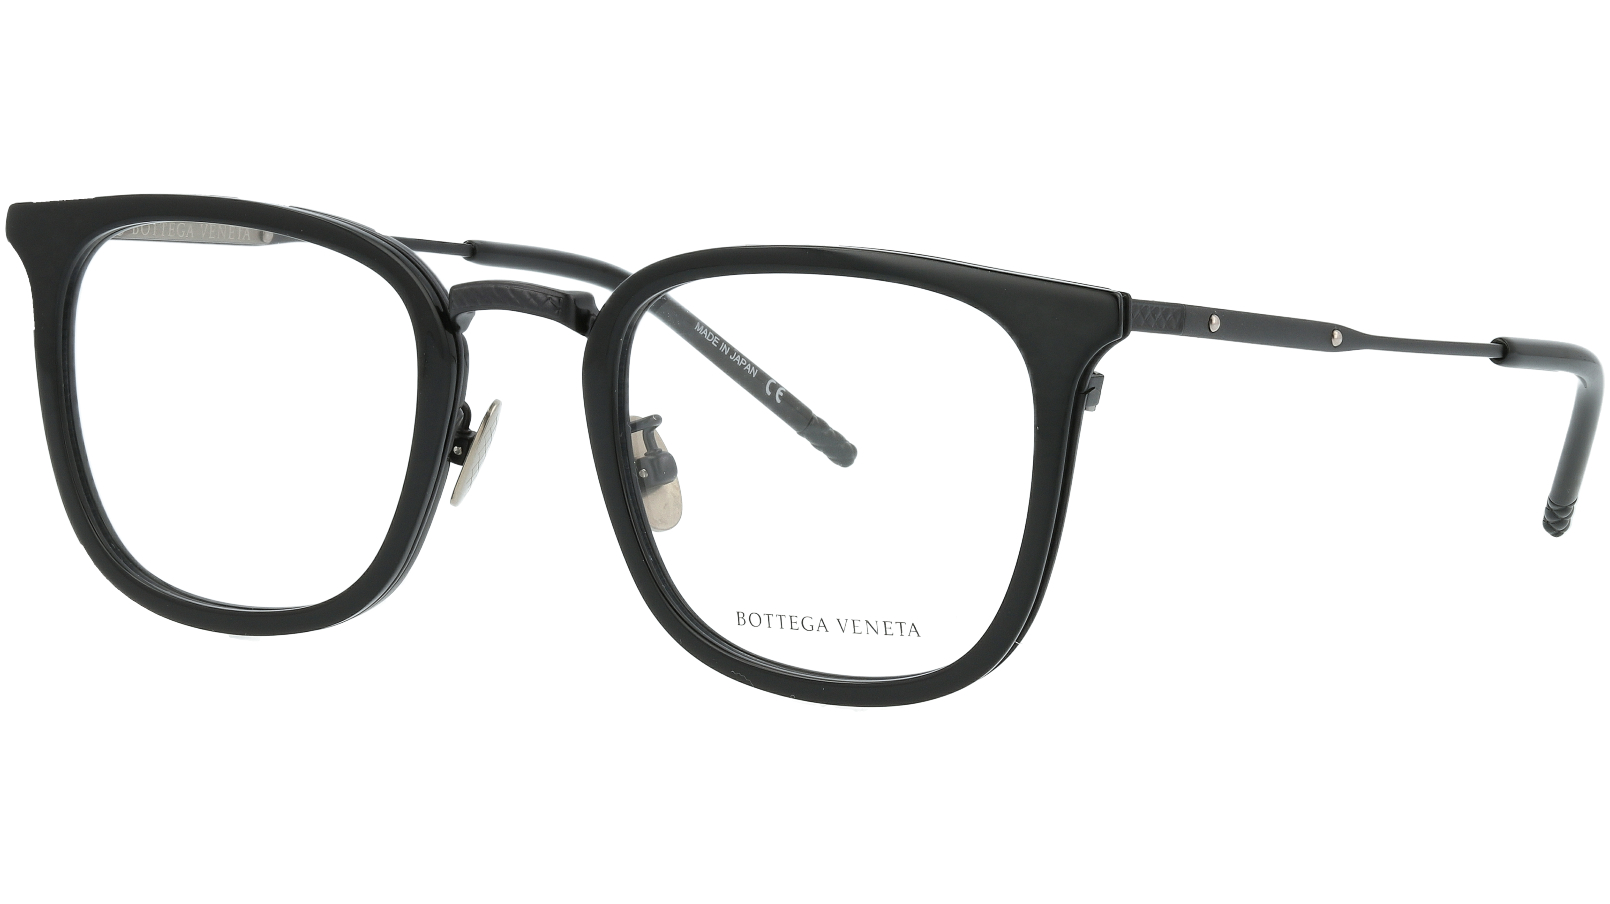 BOTTEGA VENETA BV0111O 001 50 BLACK Glasses